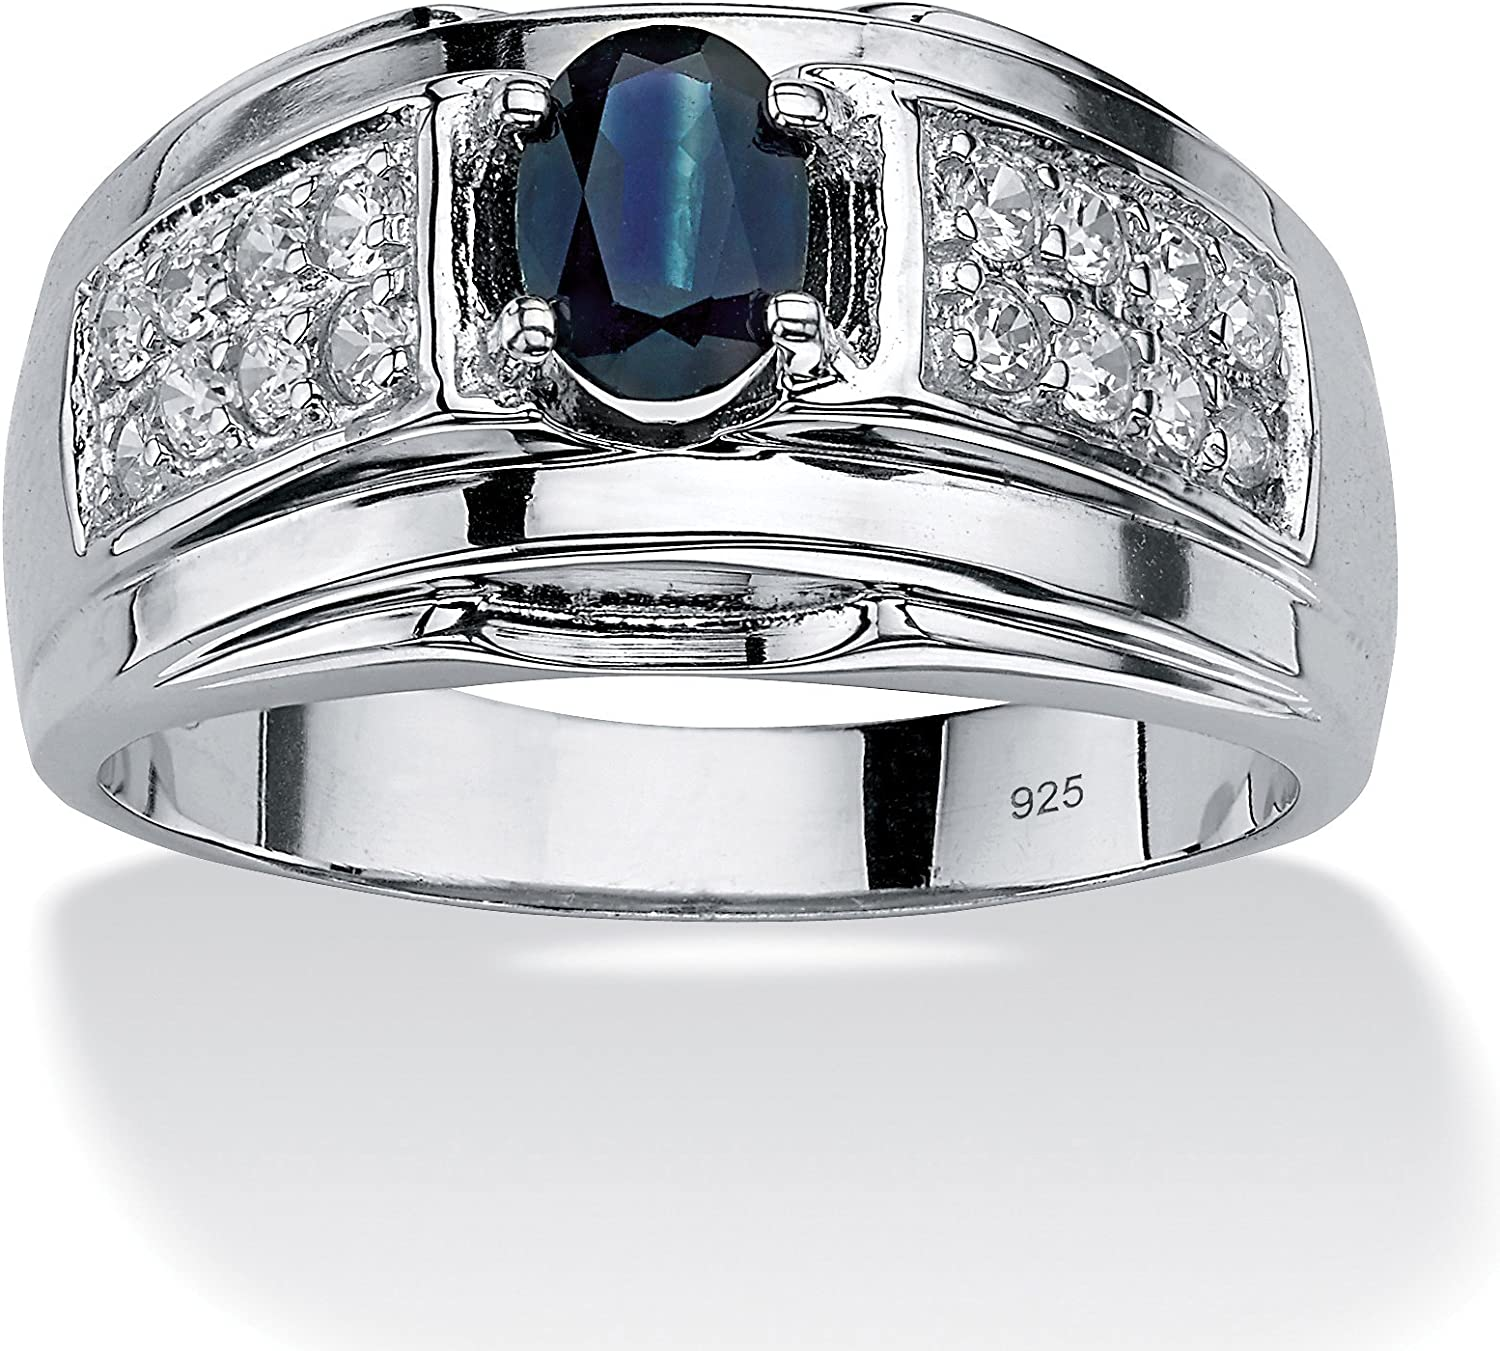 Men's Sterling Silver Oval Shaped Genuine Blue Sapphire and Round Cubic Zirconia Ring